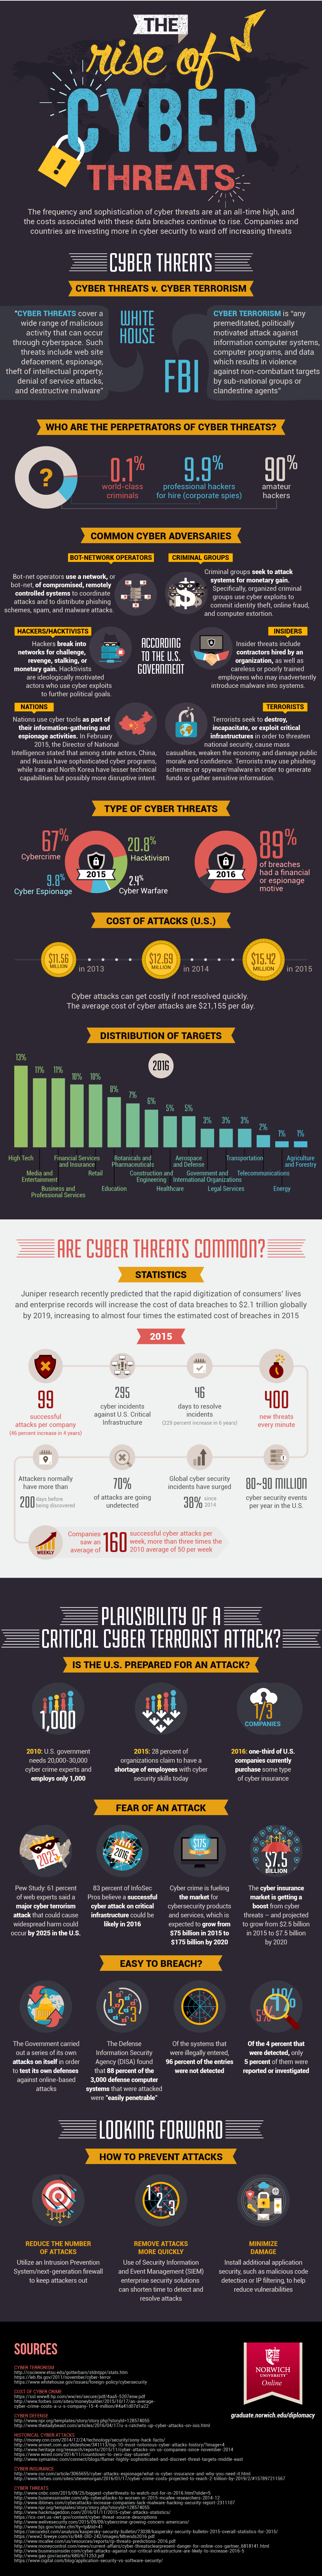 The-rise-of-cyber-terrorism-ee34967bb547681215e5cddc916c11a665e4942d